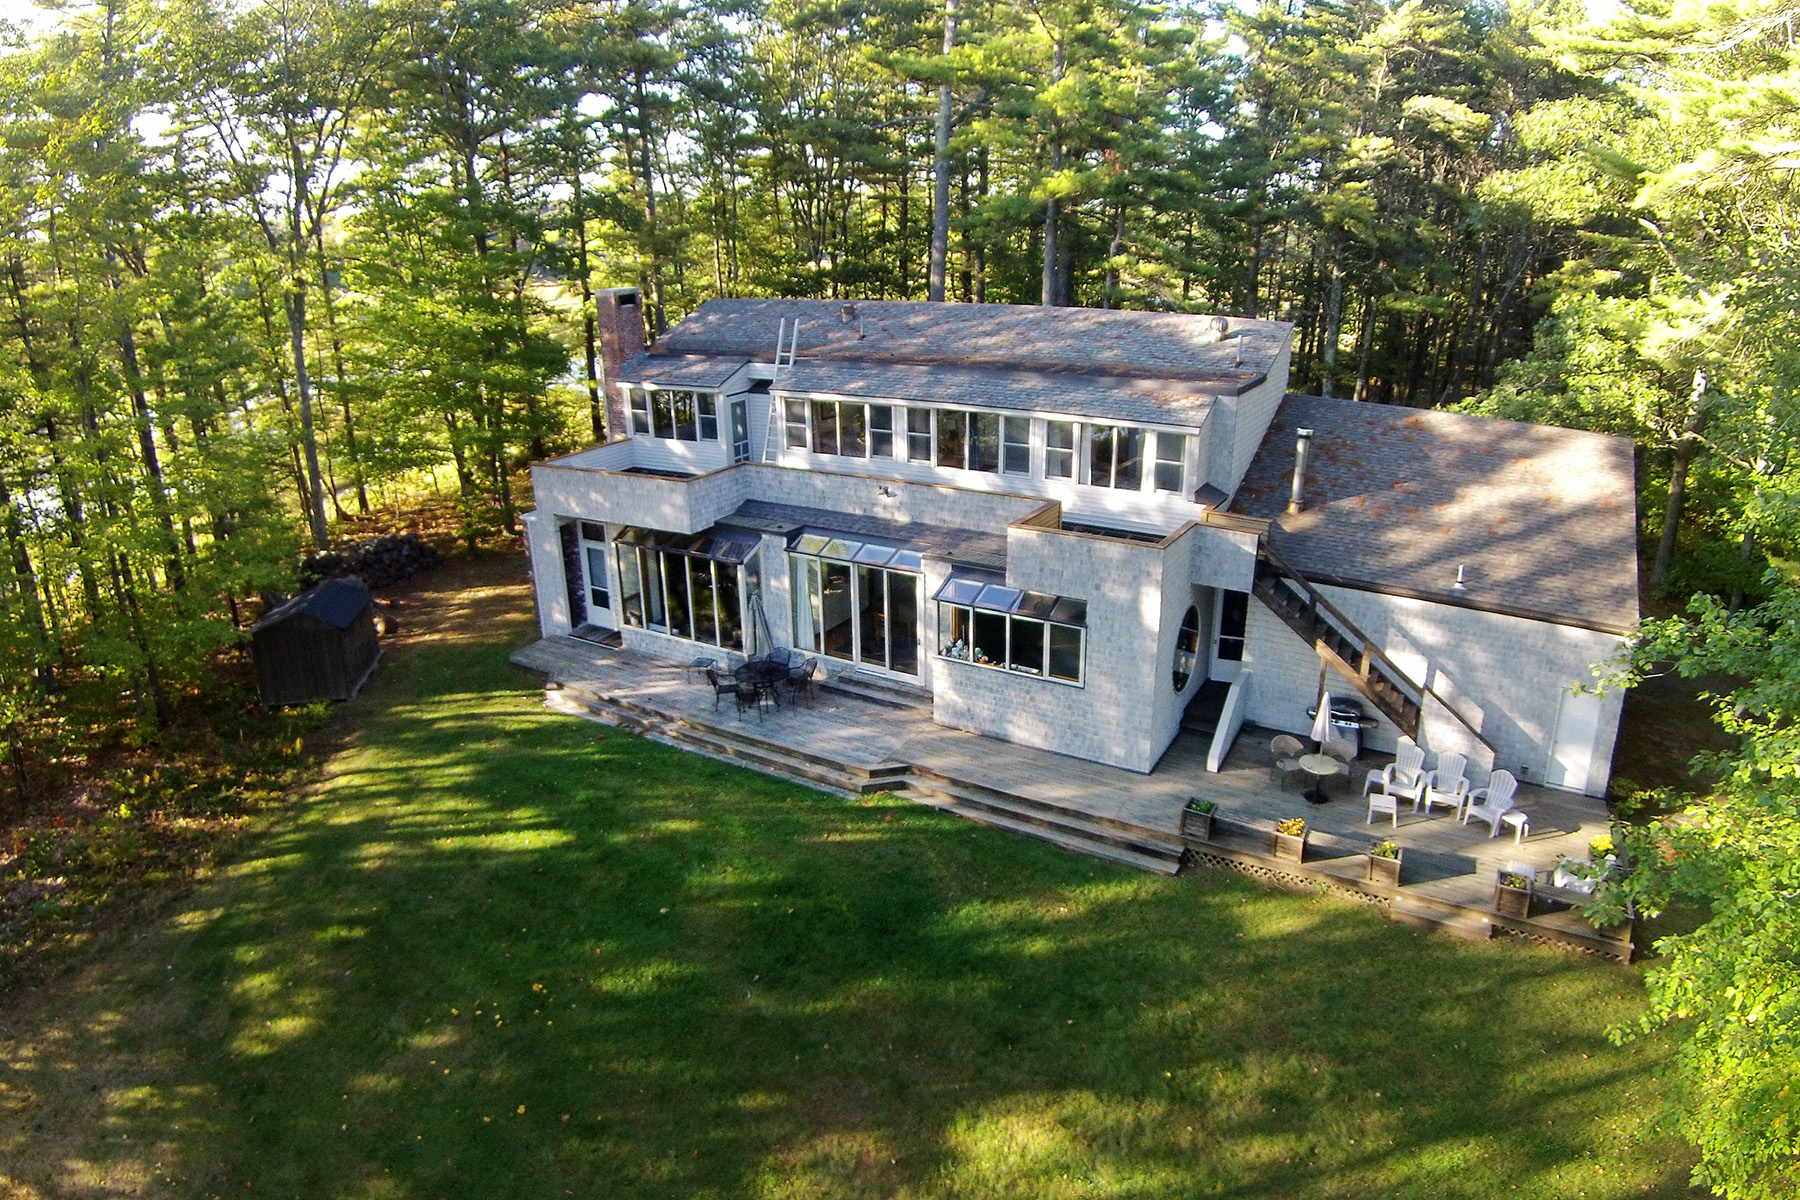 Single Family Home for Sale at Pogy Lane 43 Pogy Lane Brunswick, Maine 04011 United States